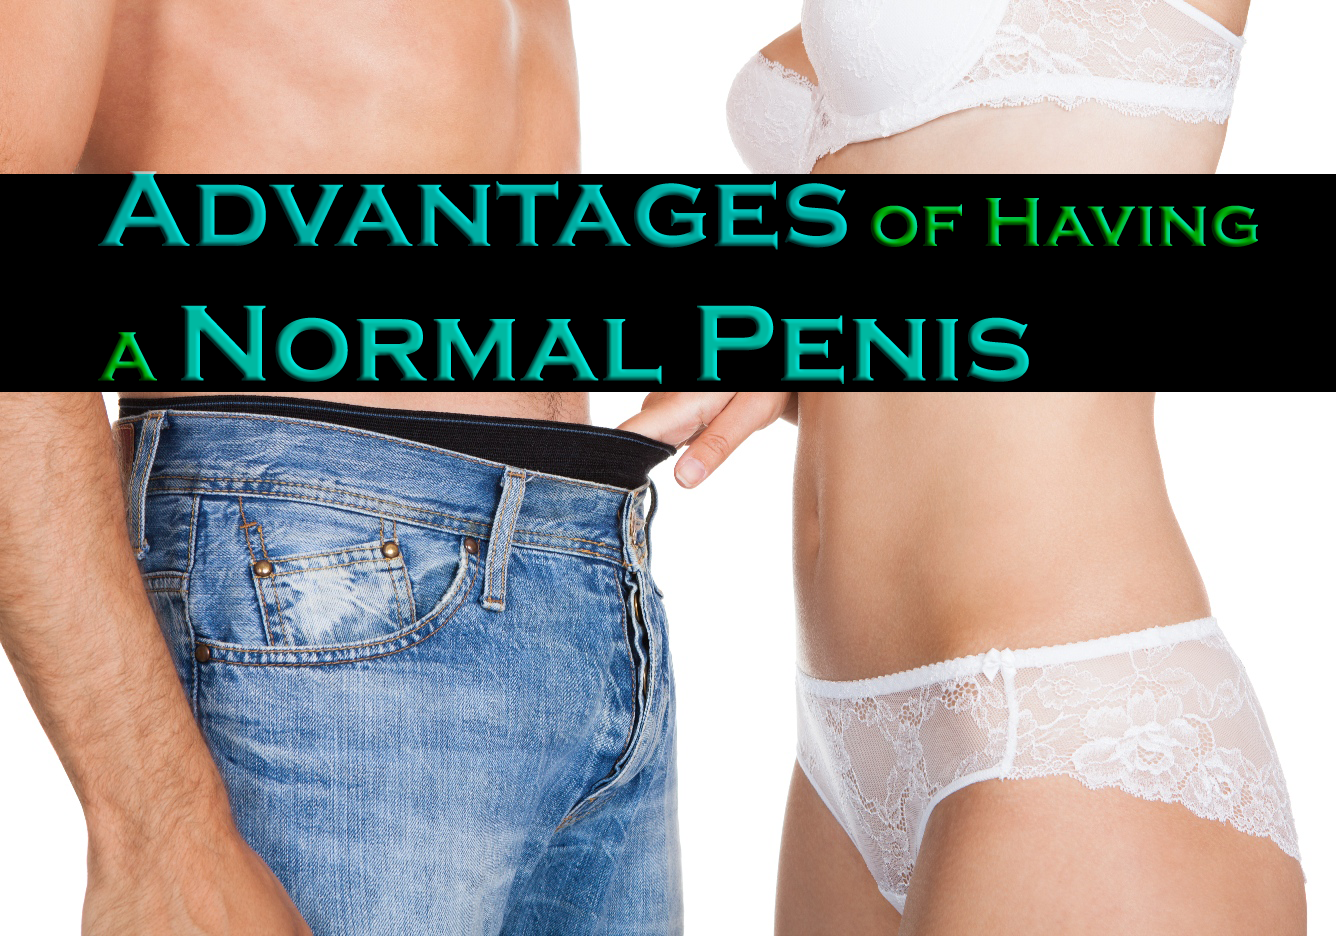 Why Bigger Isn't Always Better? - Advantages of Having A Normal Penis